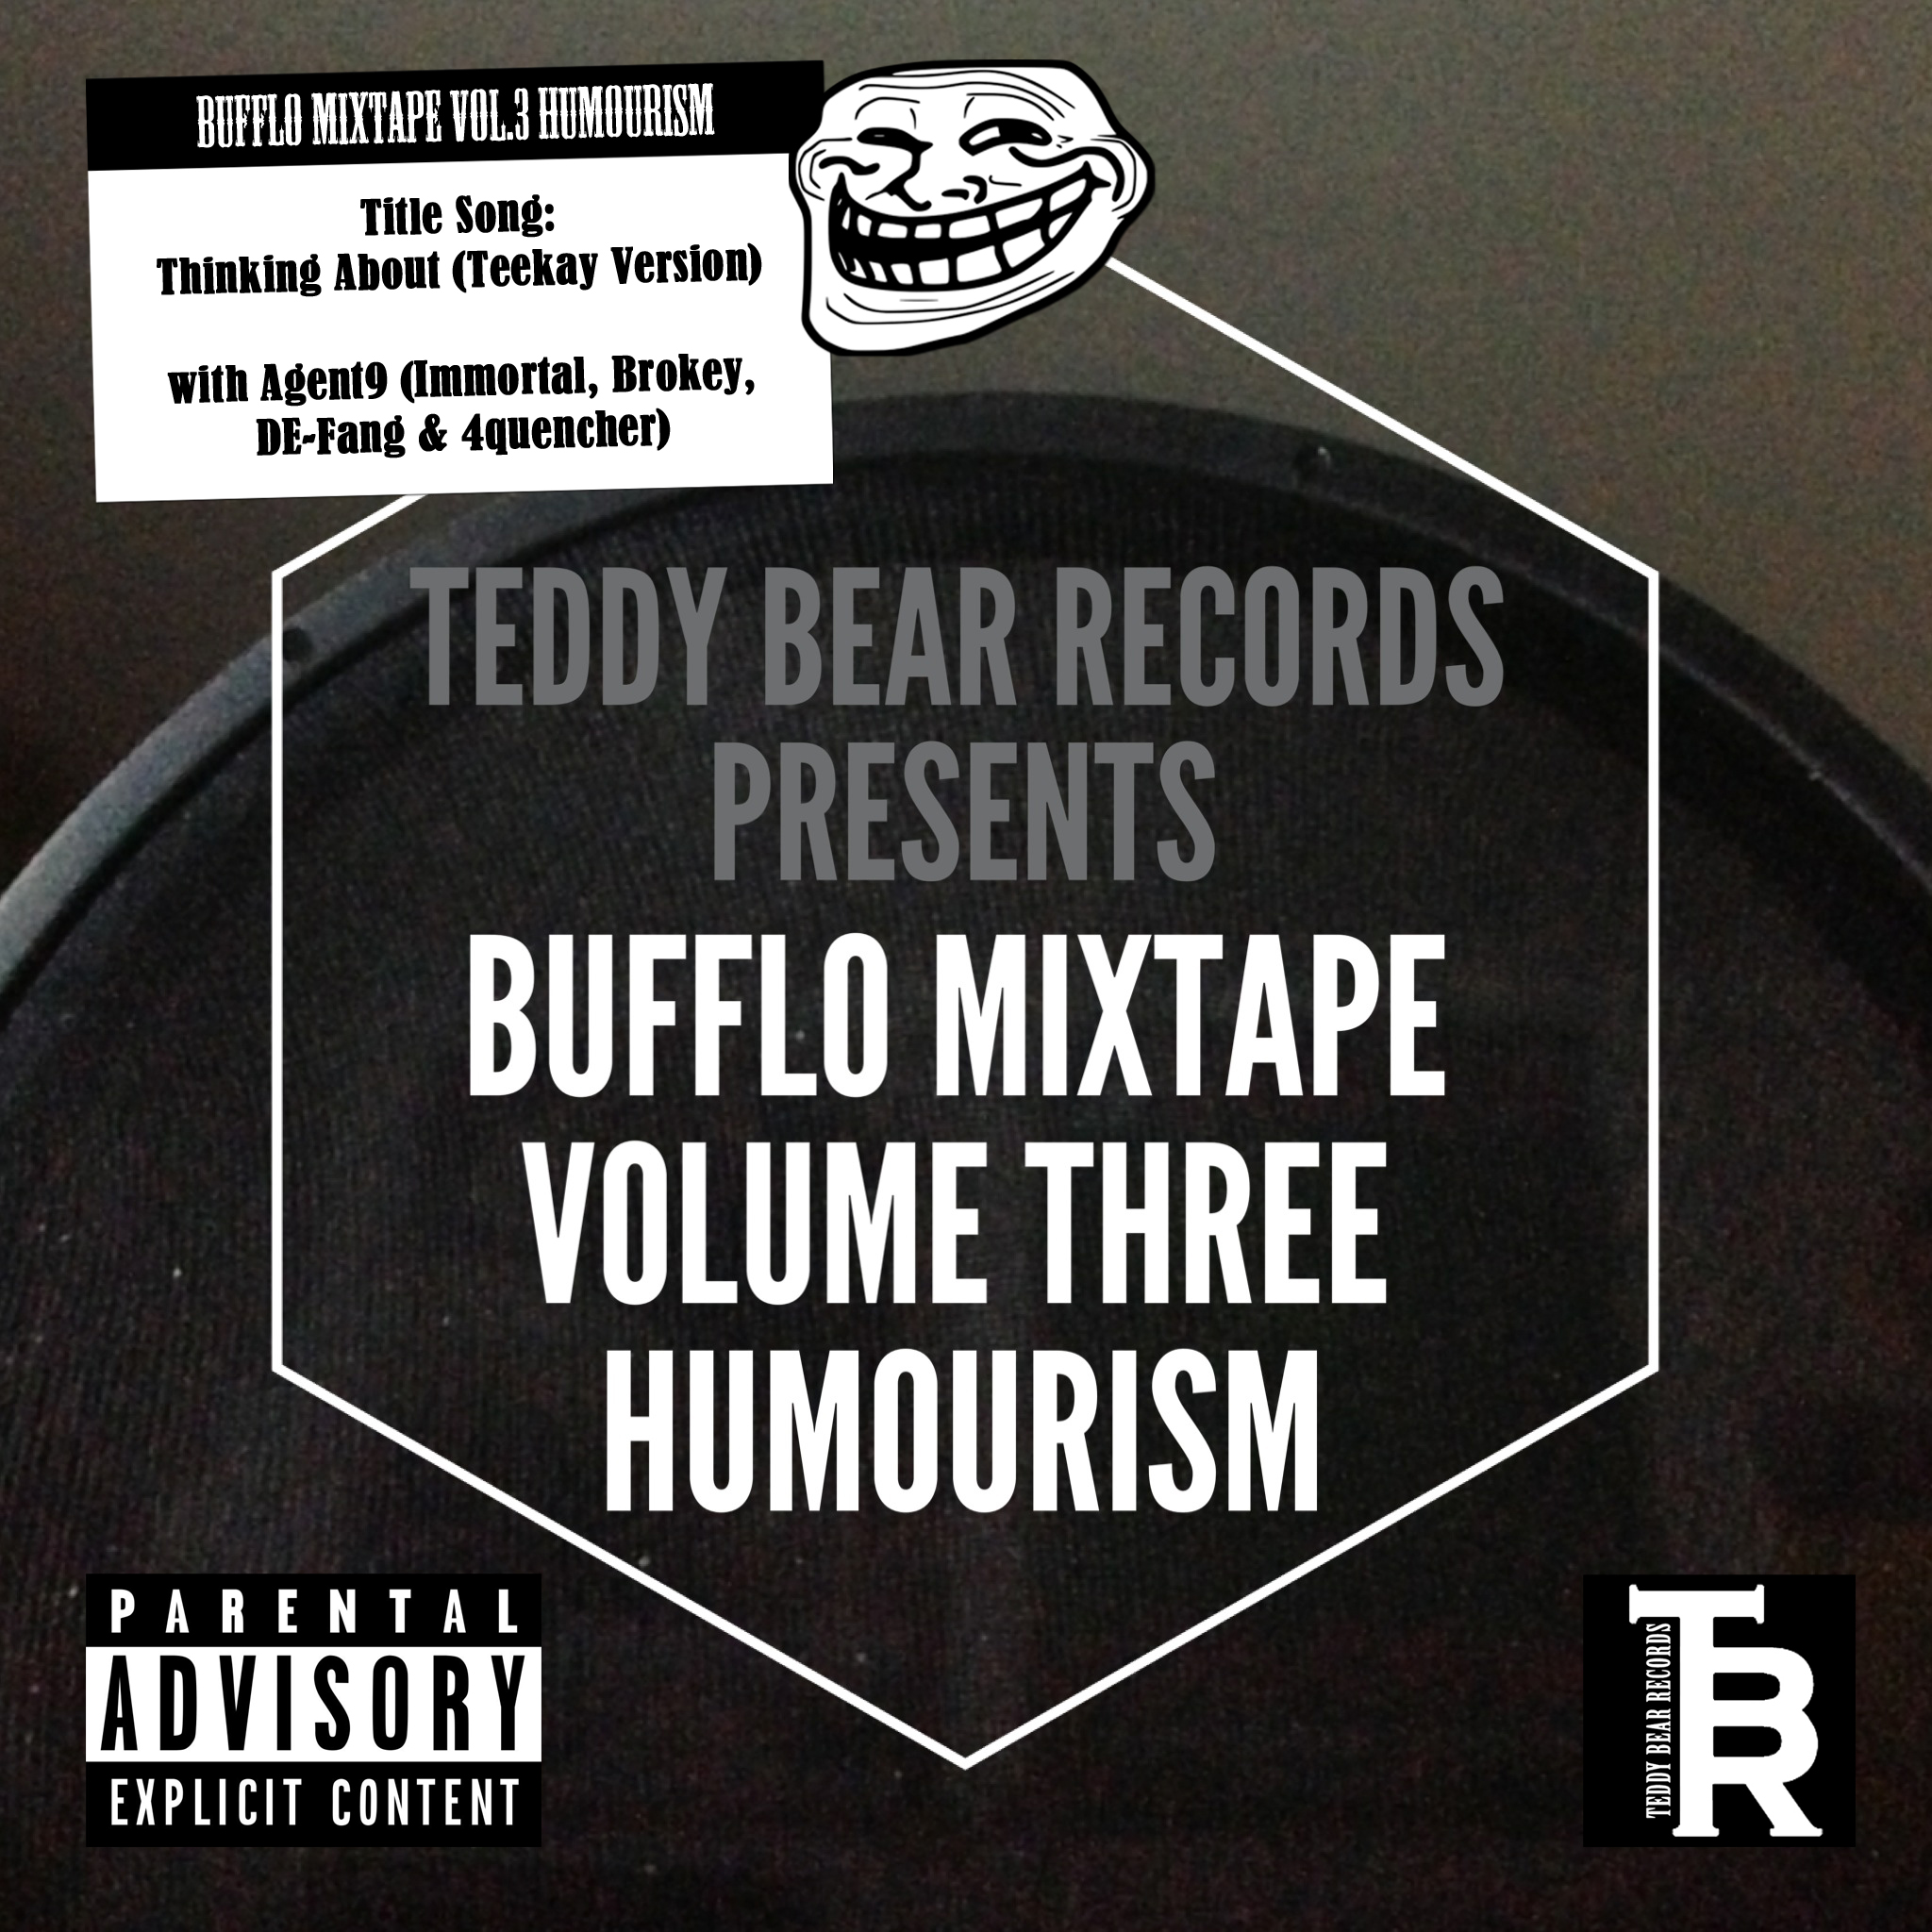 Bufflo Mixtape Vol.3 Humourism